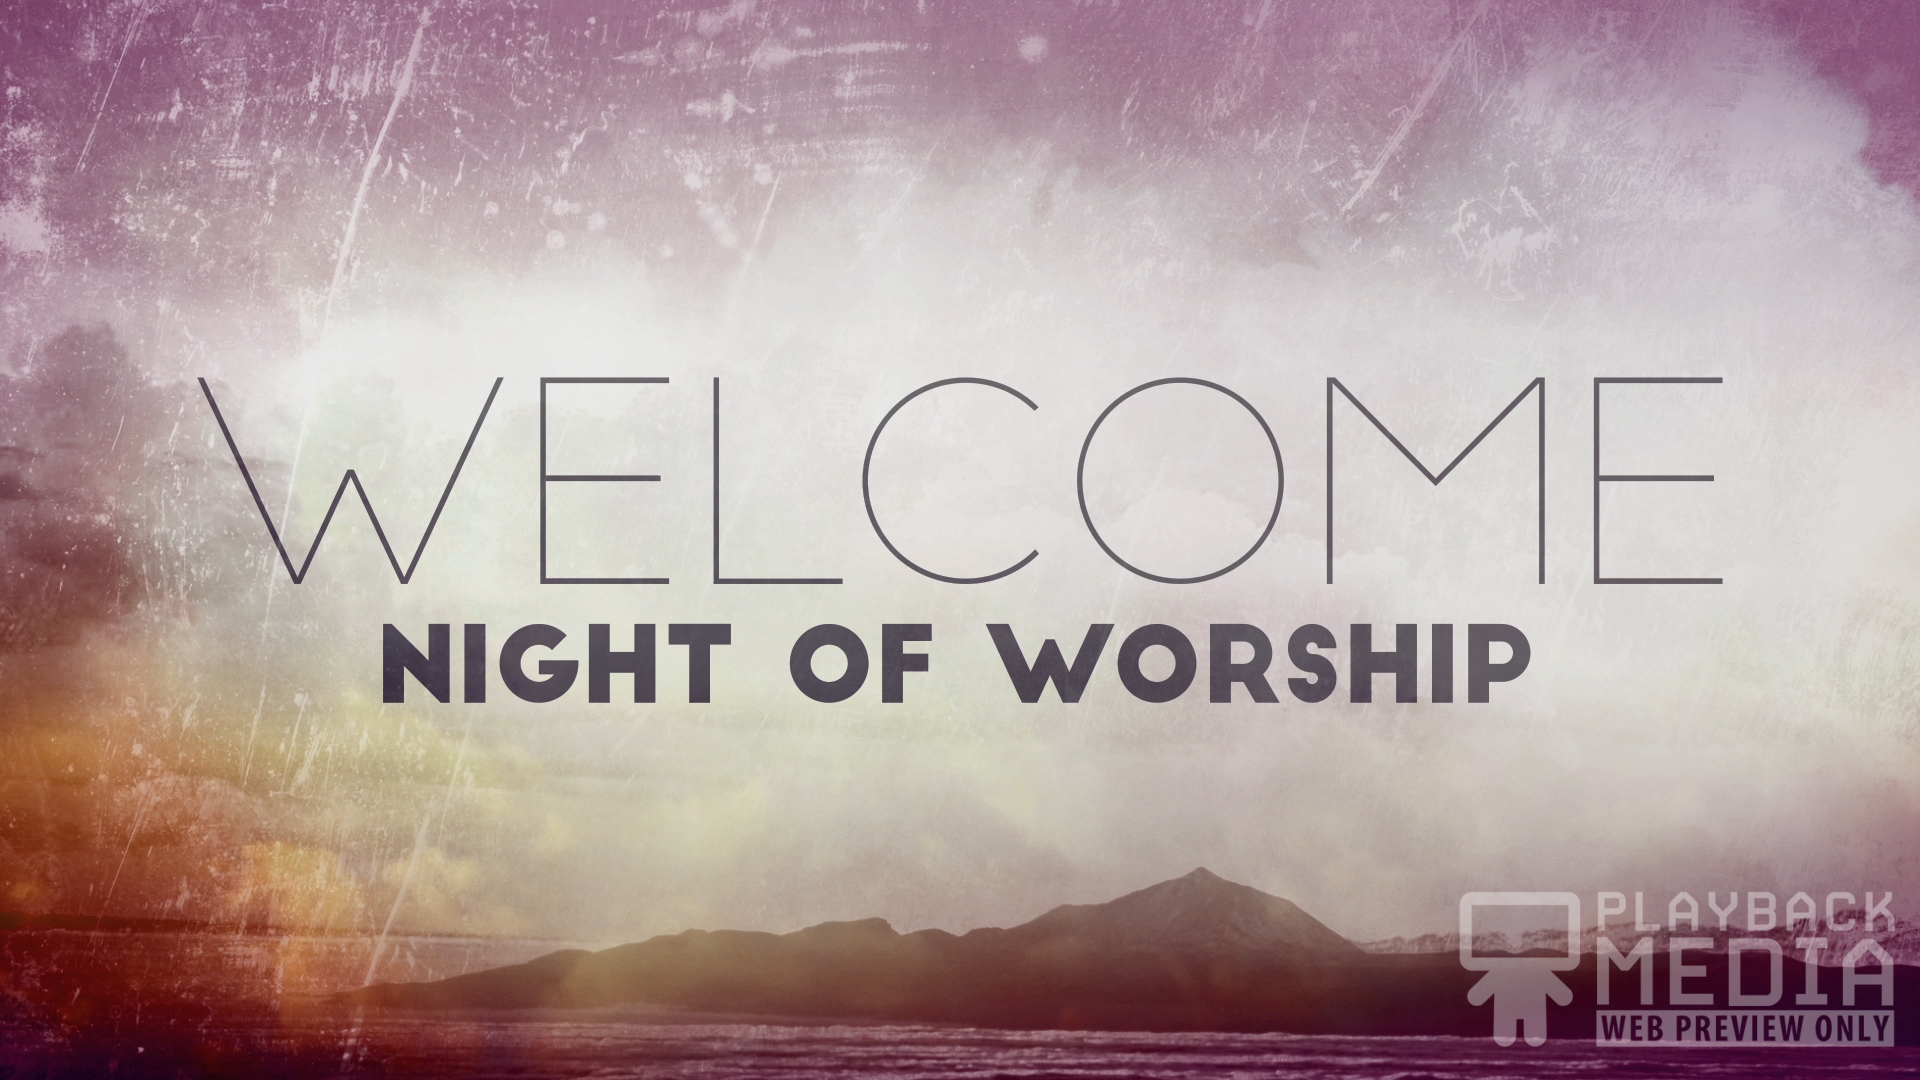 Praise Worship Night Motion Image